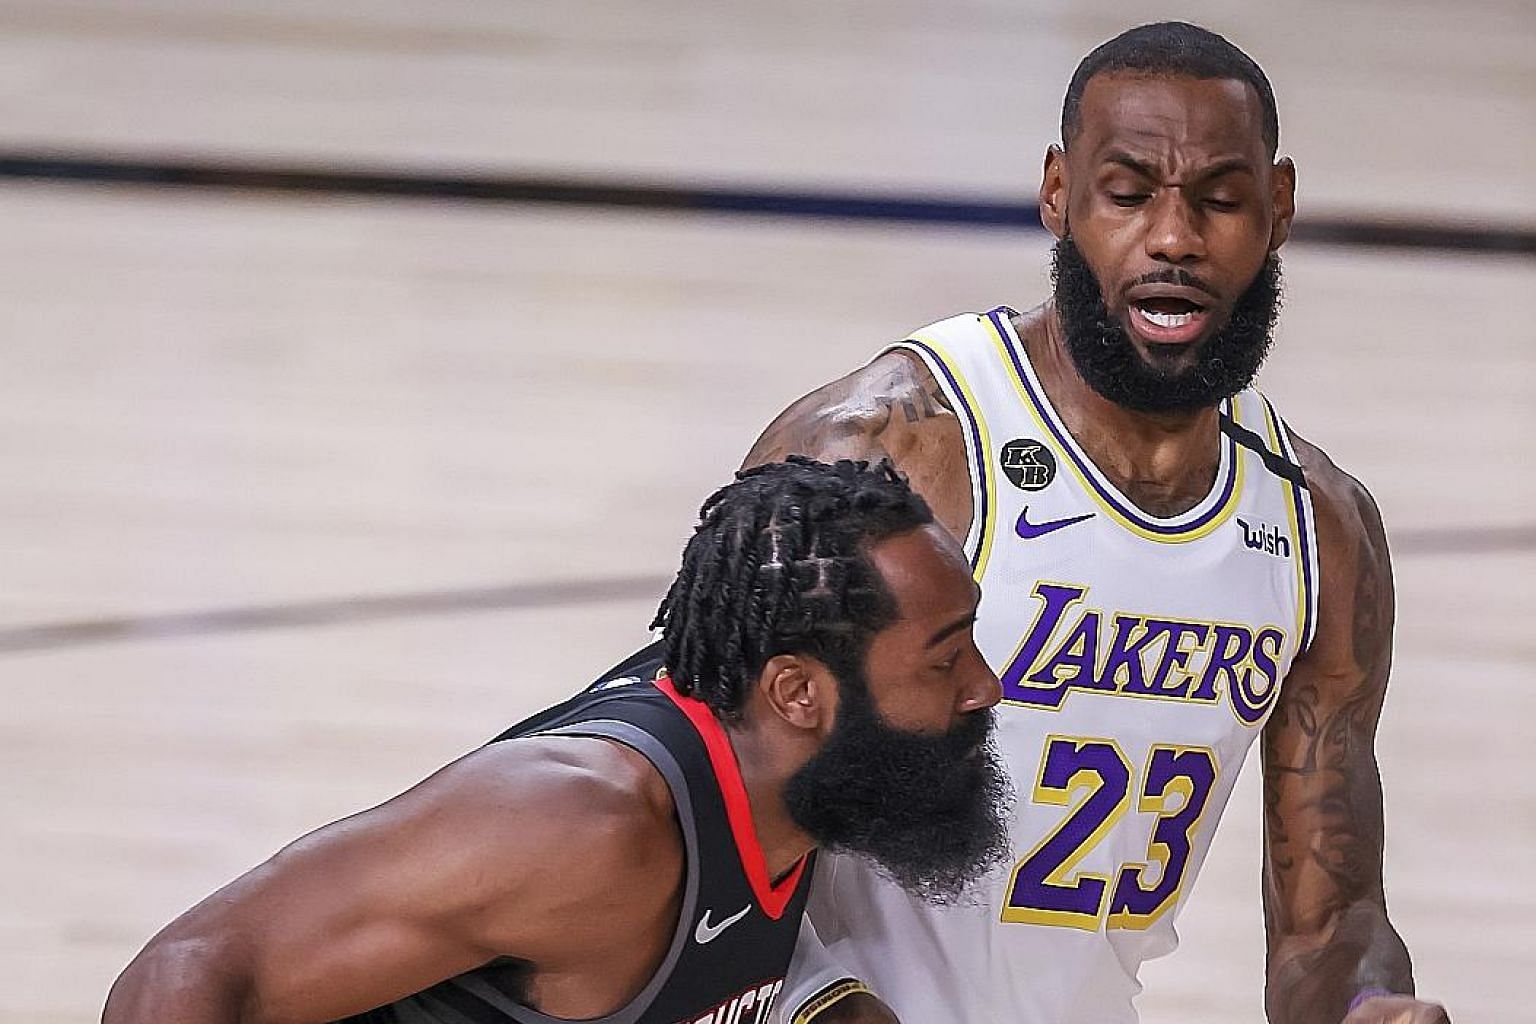 Rockets guard James Harden taking on Lakers forward LeBron James in Game 5 of their Western Conference semi-finals. The Lakers cruised to a 119-96 victory to win the series 4-1. PHOTO: EPA-EFE